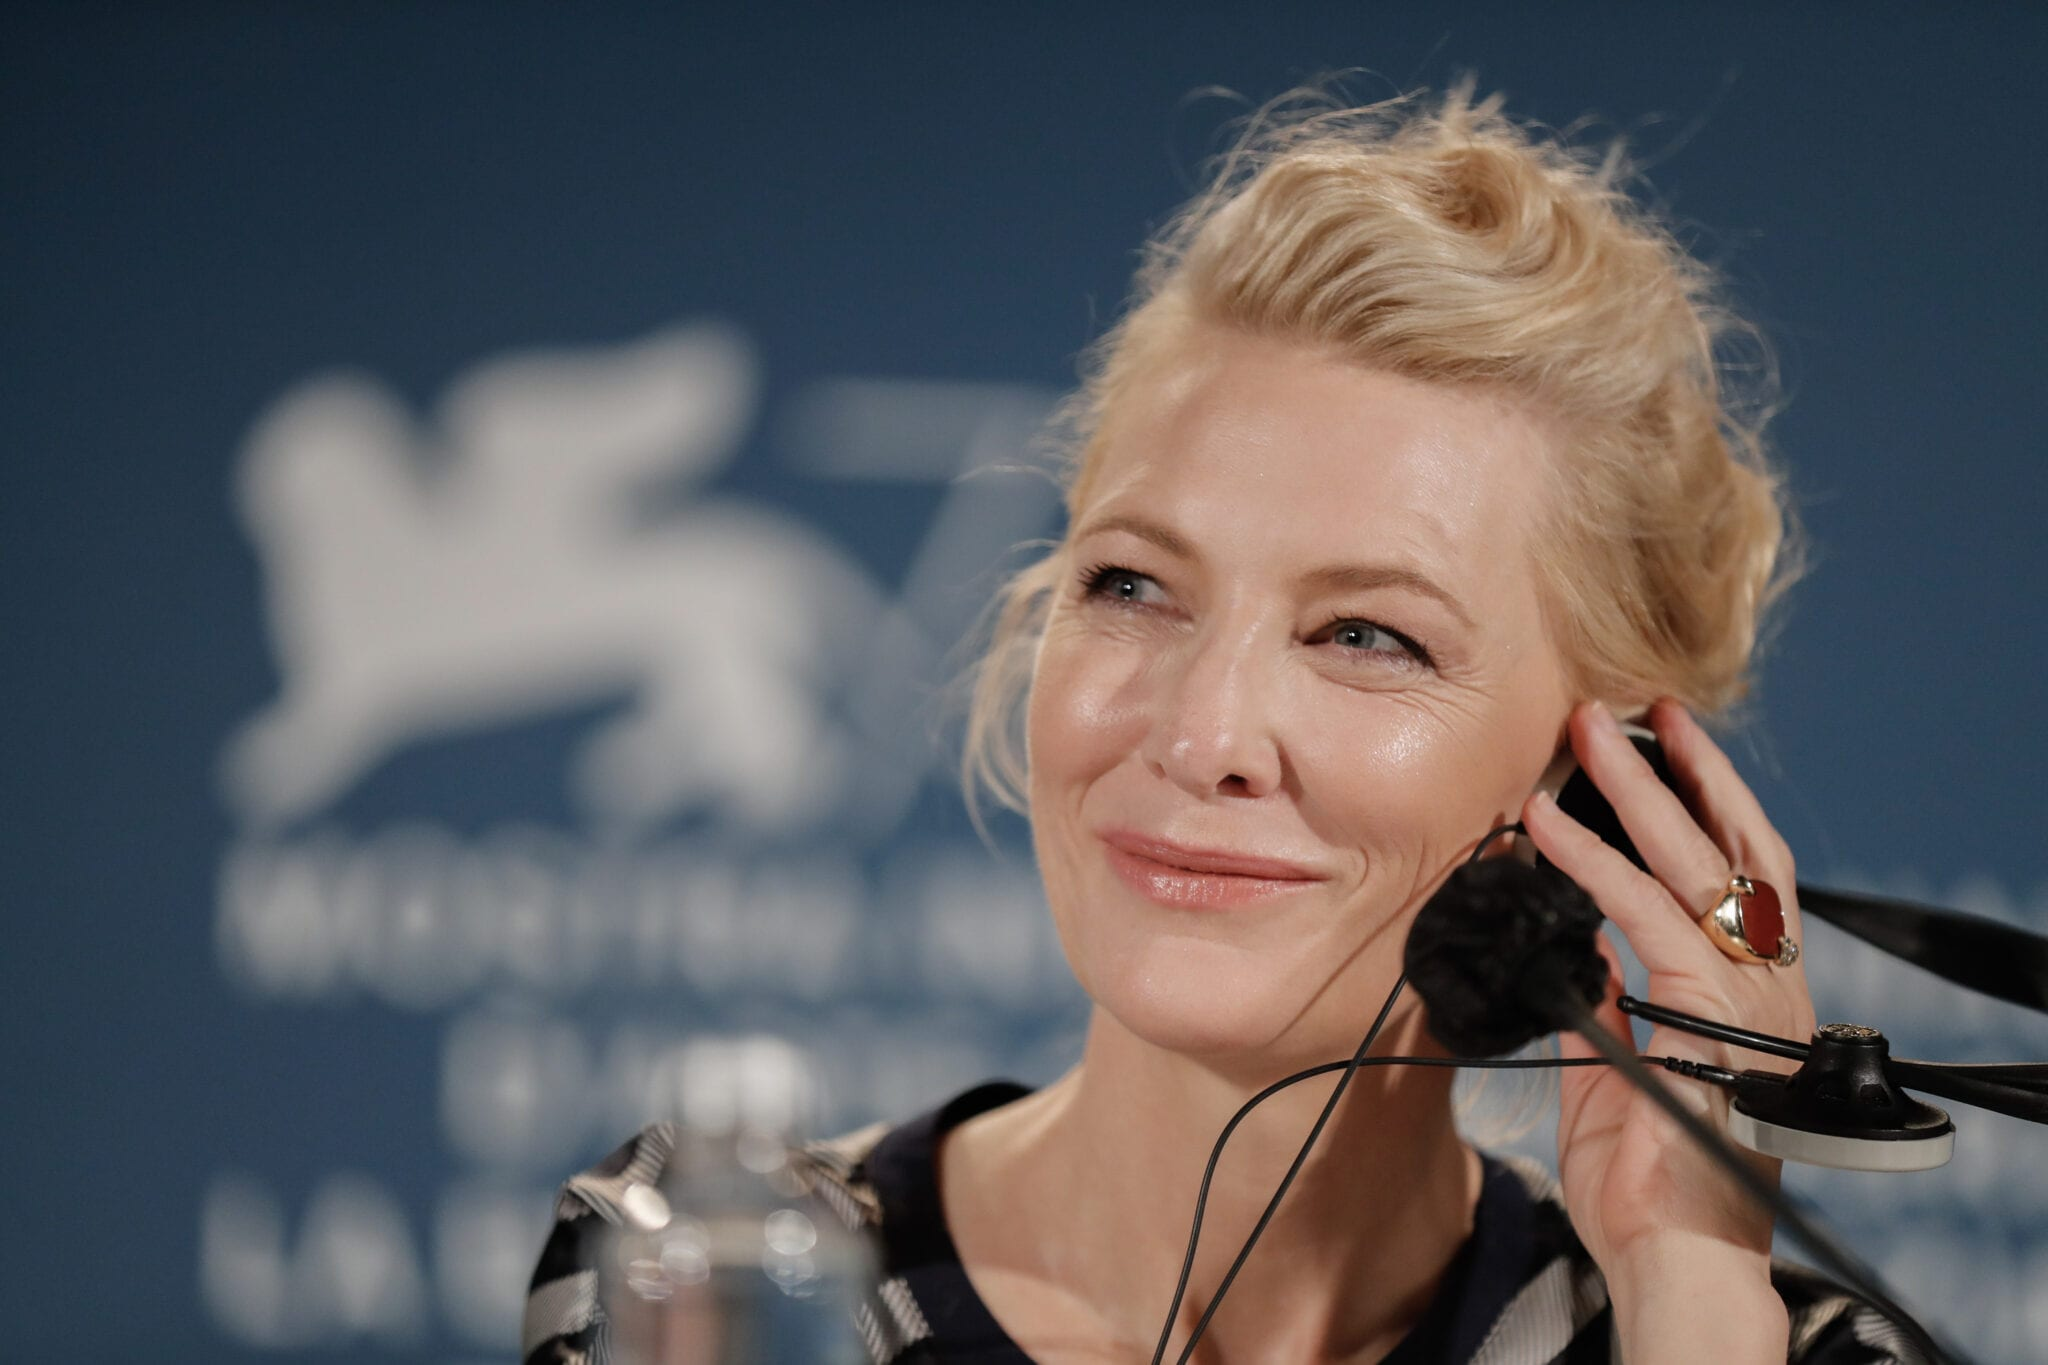 Cate Blanchett smiles and looks to the left while holding a black headset to her ears.